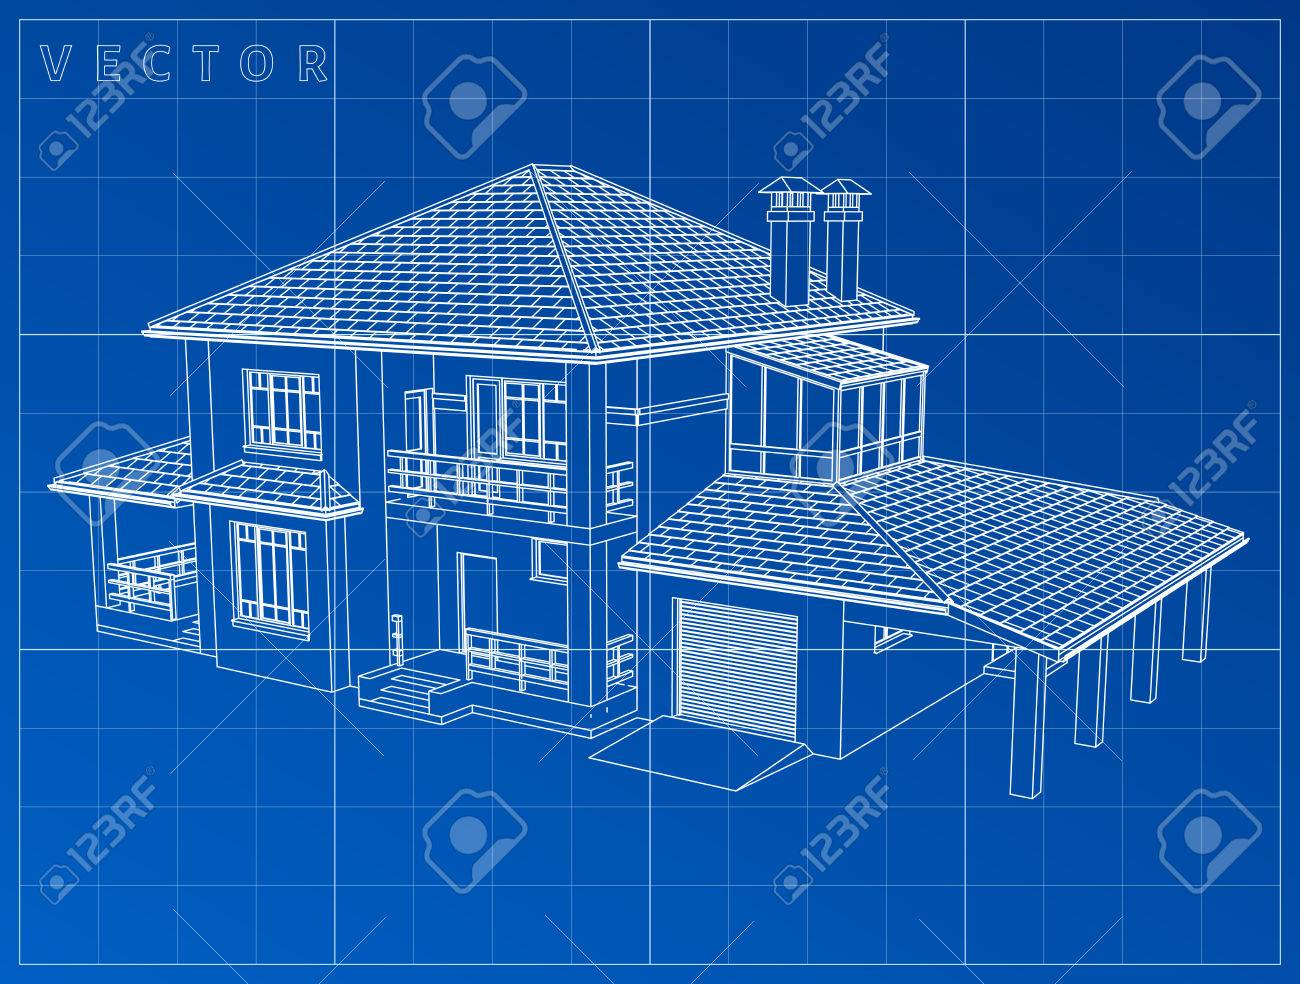 Amazing Vector   Wireframe Blueprint Drawing Of 3D House   Vector Illustration. Eps  10 Home Design Ideas